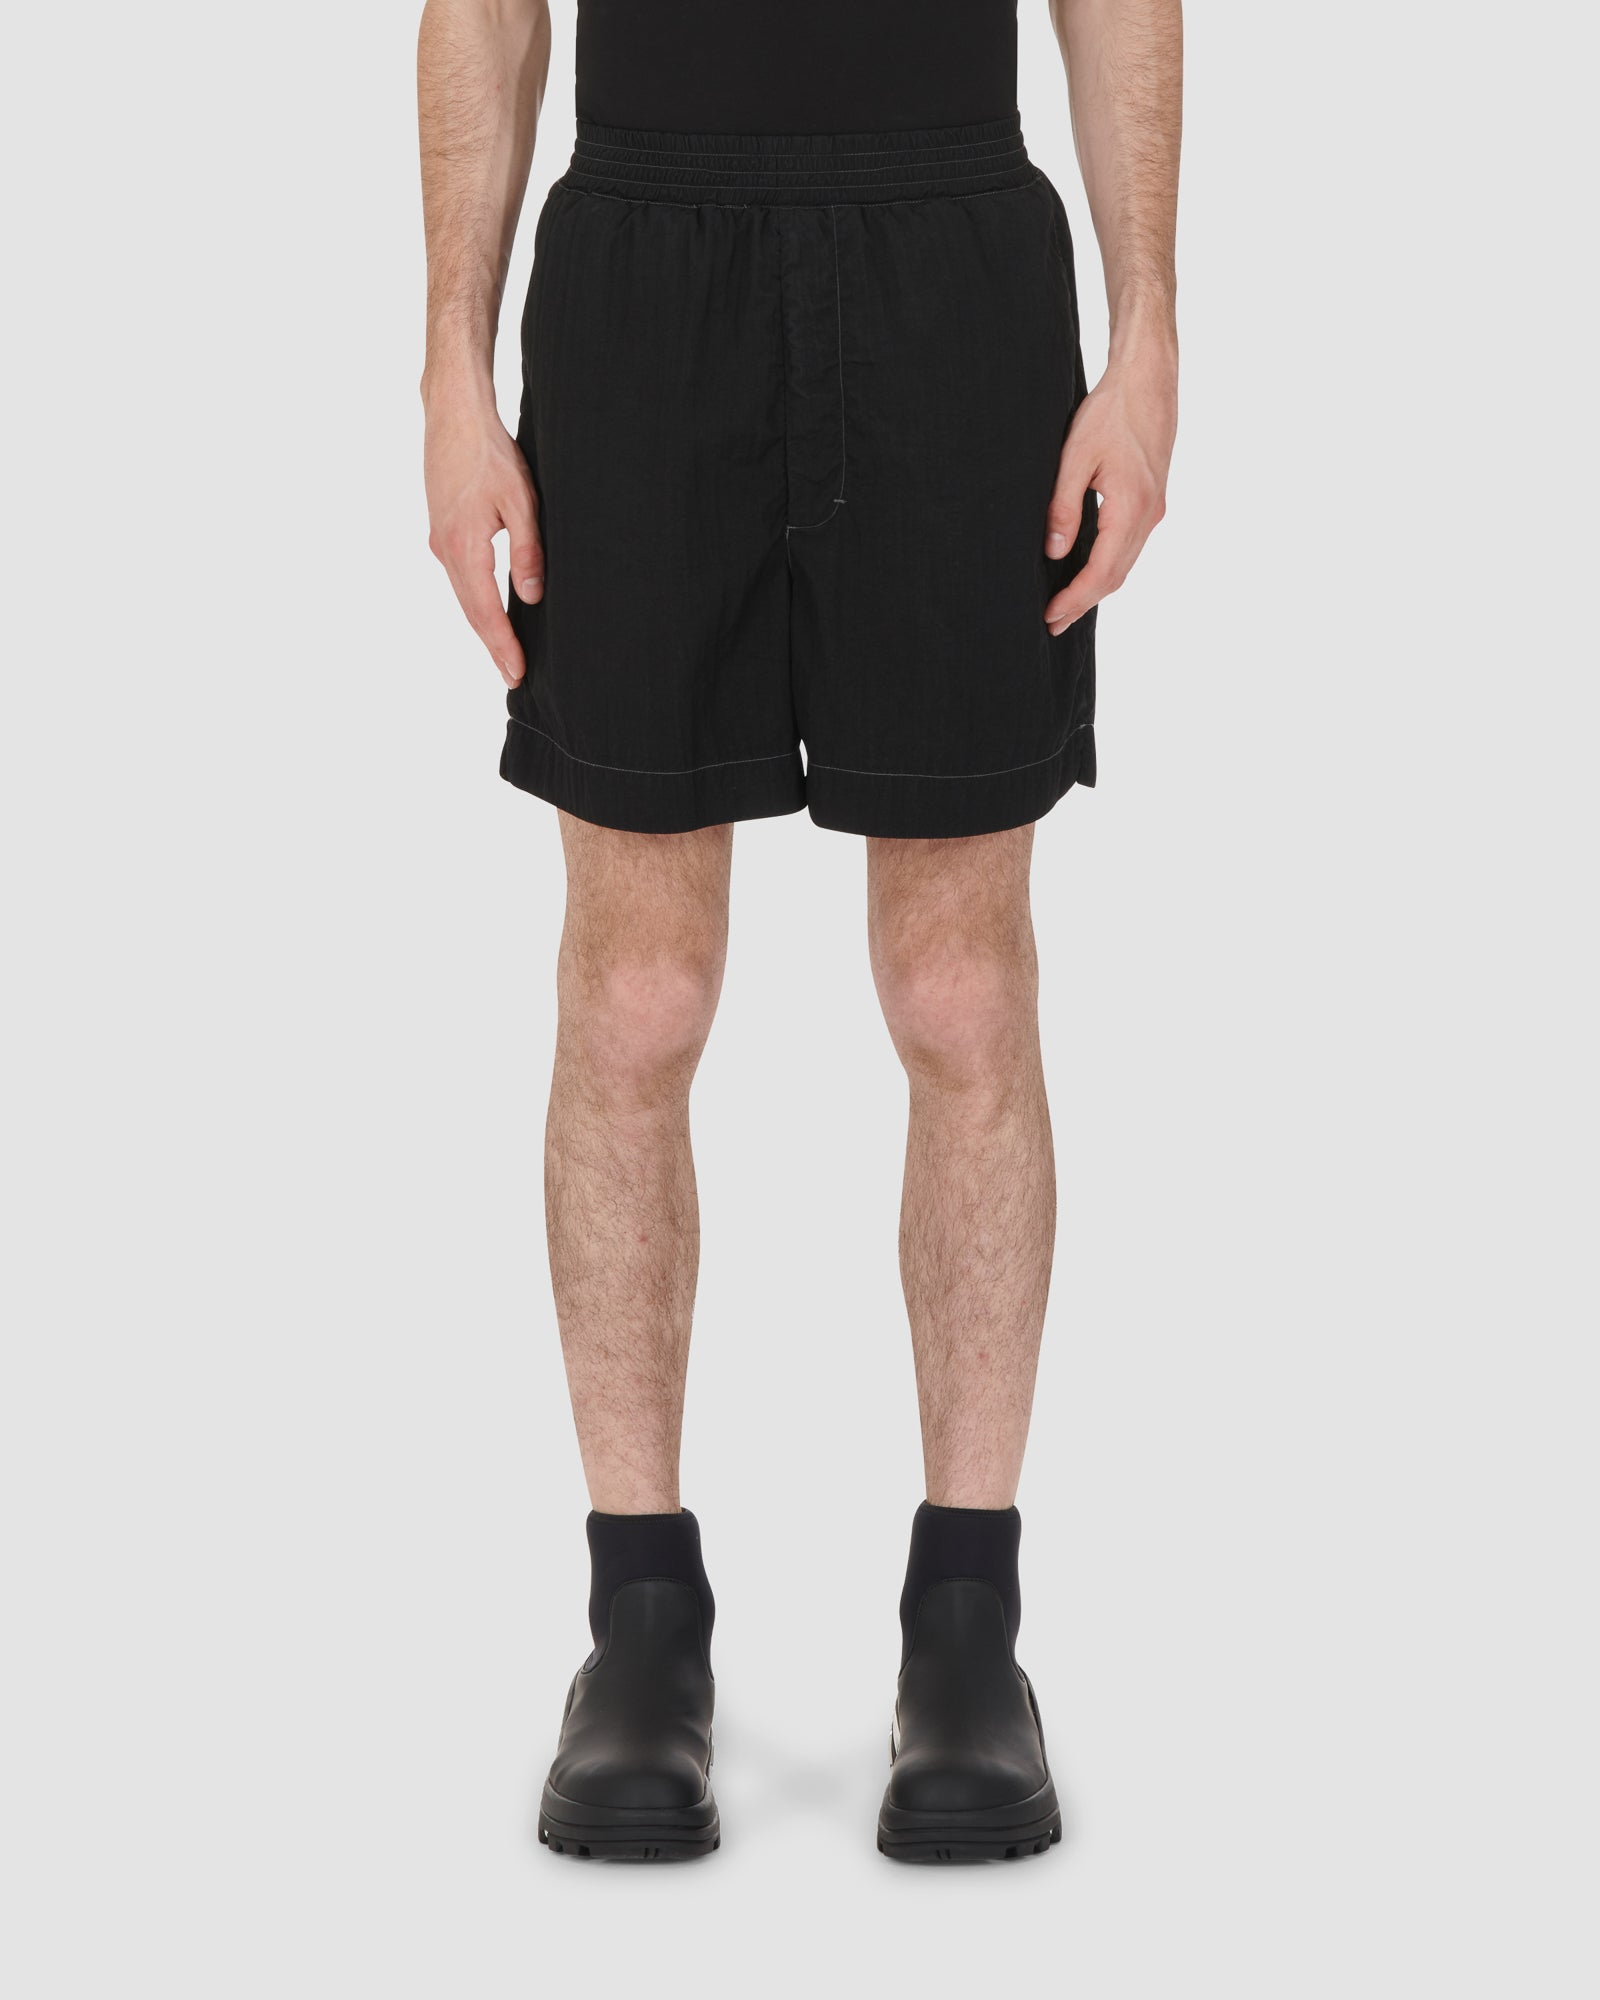 1017 ALYX 9SM | GARMENT DYED SWIM TRUNK | Swimwear | BEACHWEAR, BLACK, Google Shopping, Man, MEN, S20, SS20